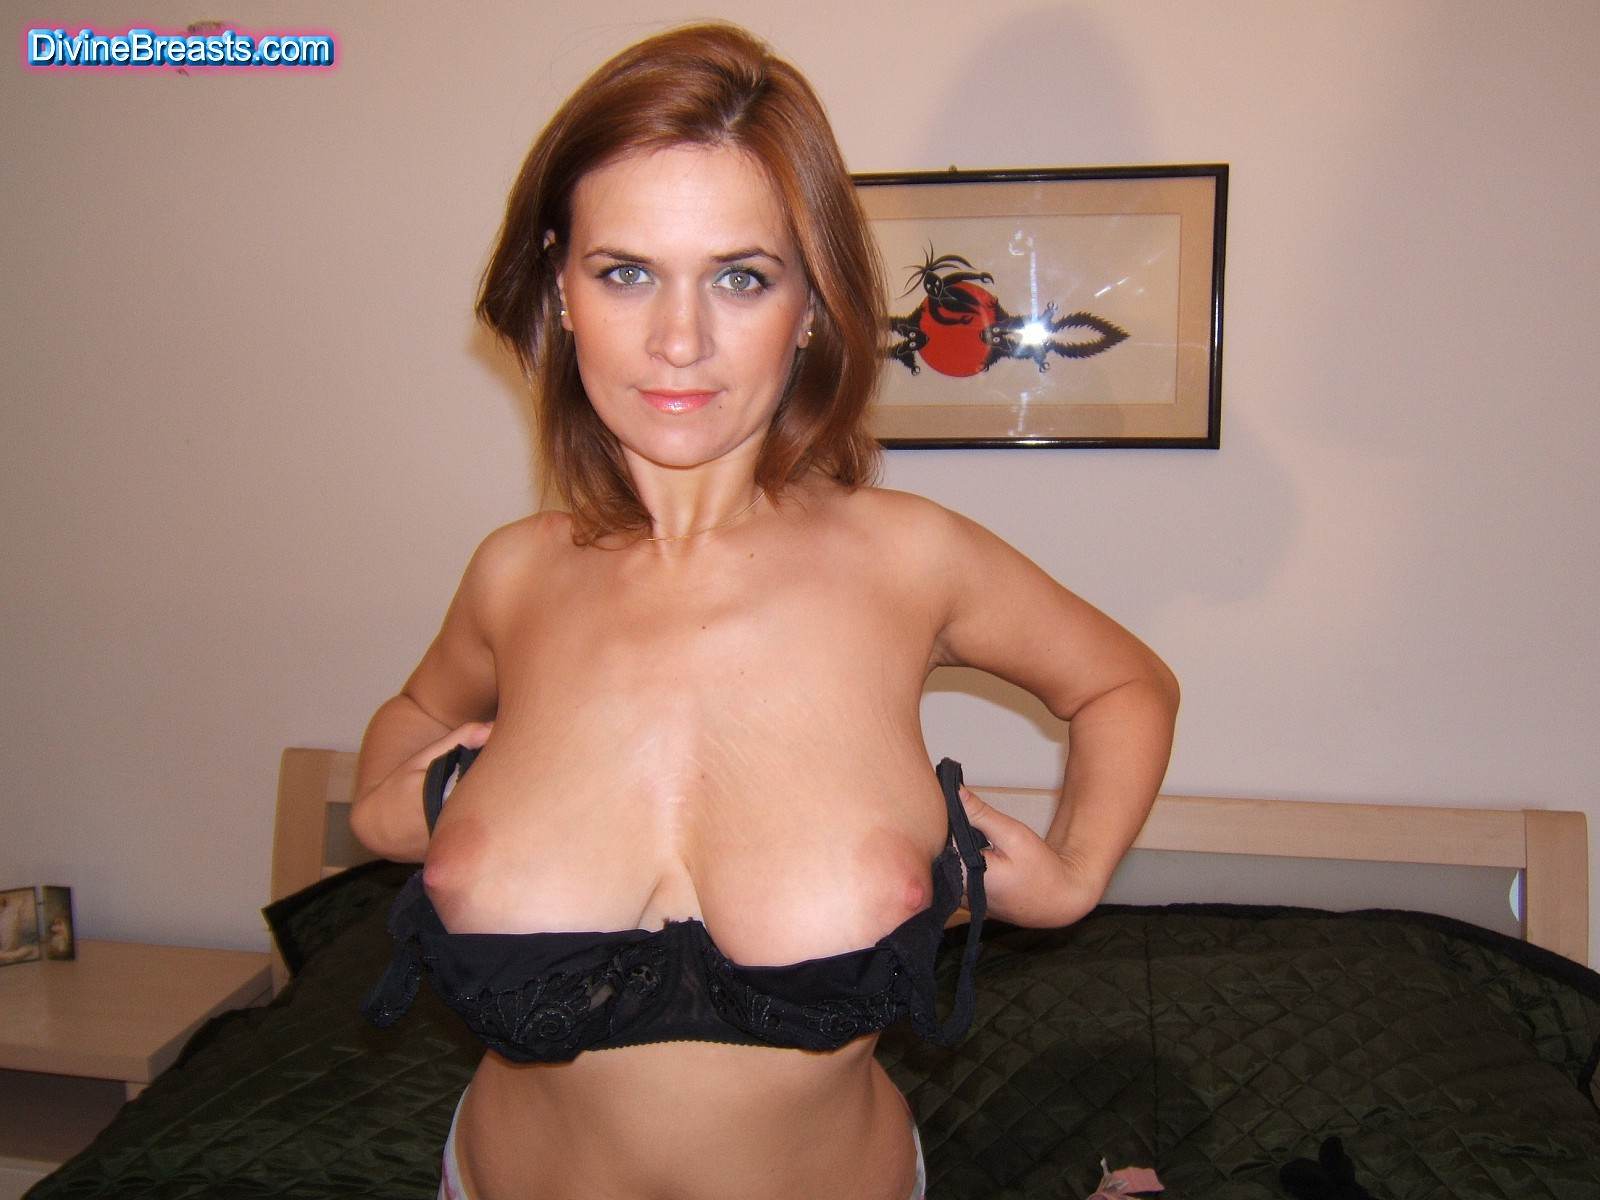 Bras and tits mature pics